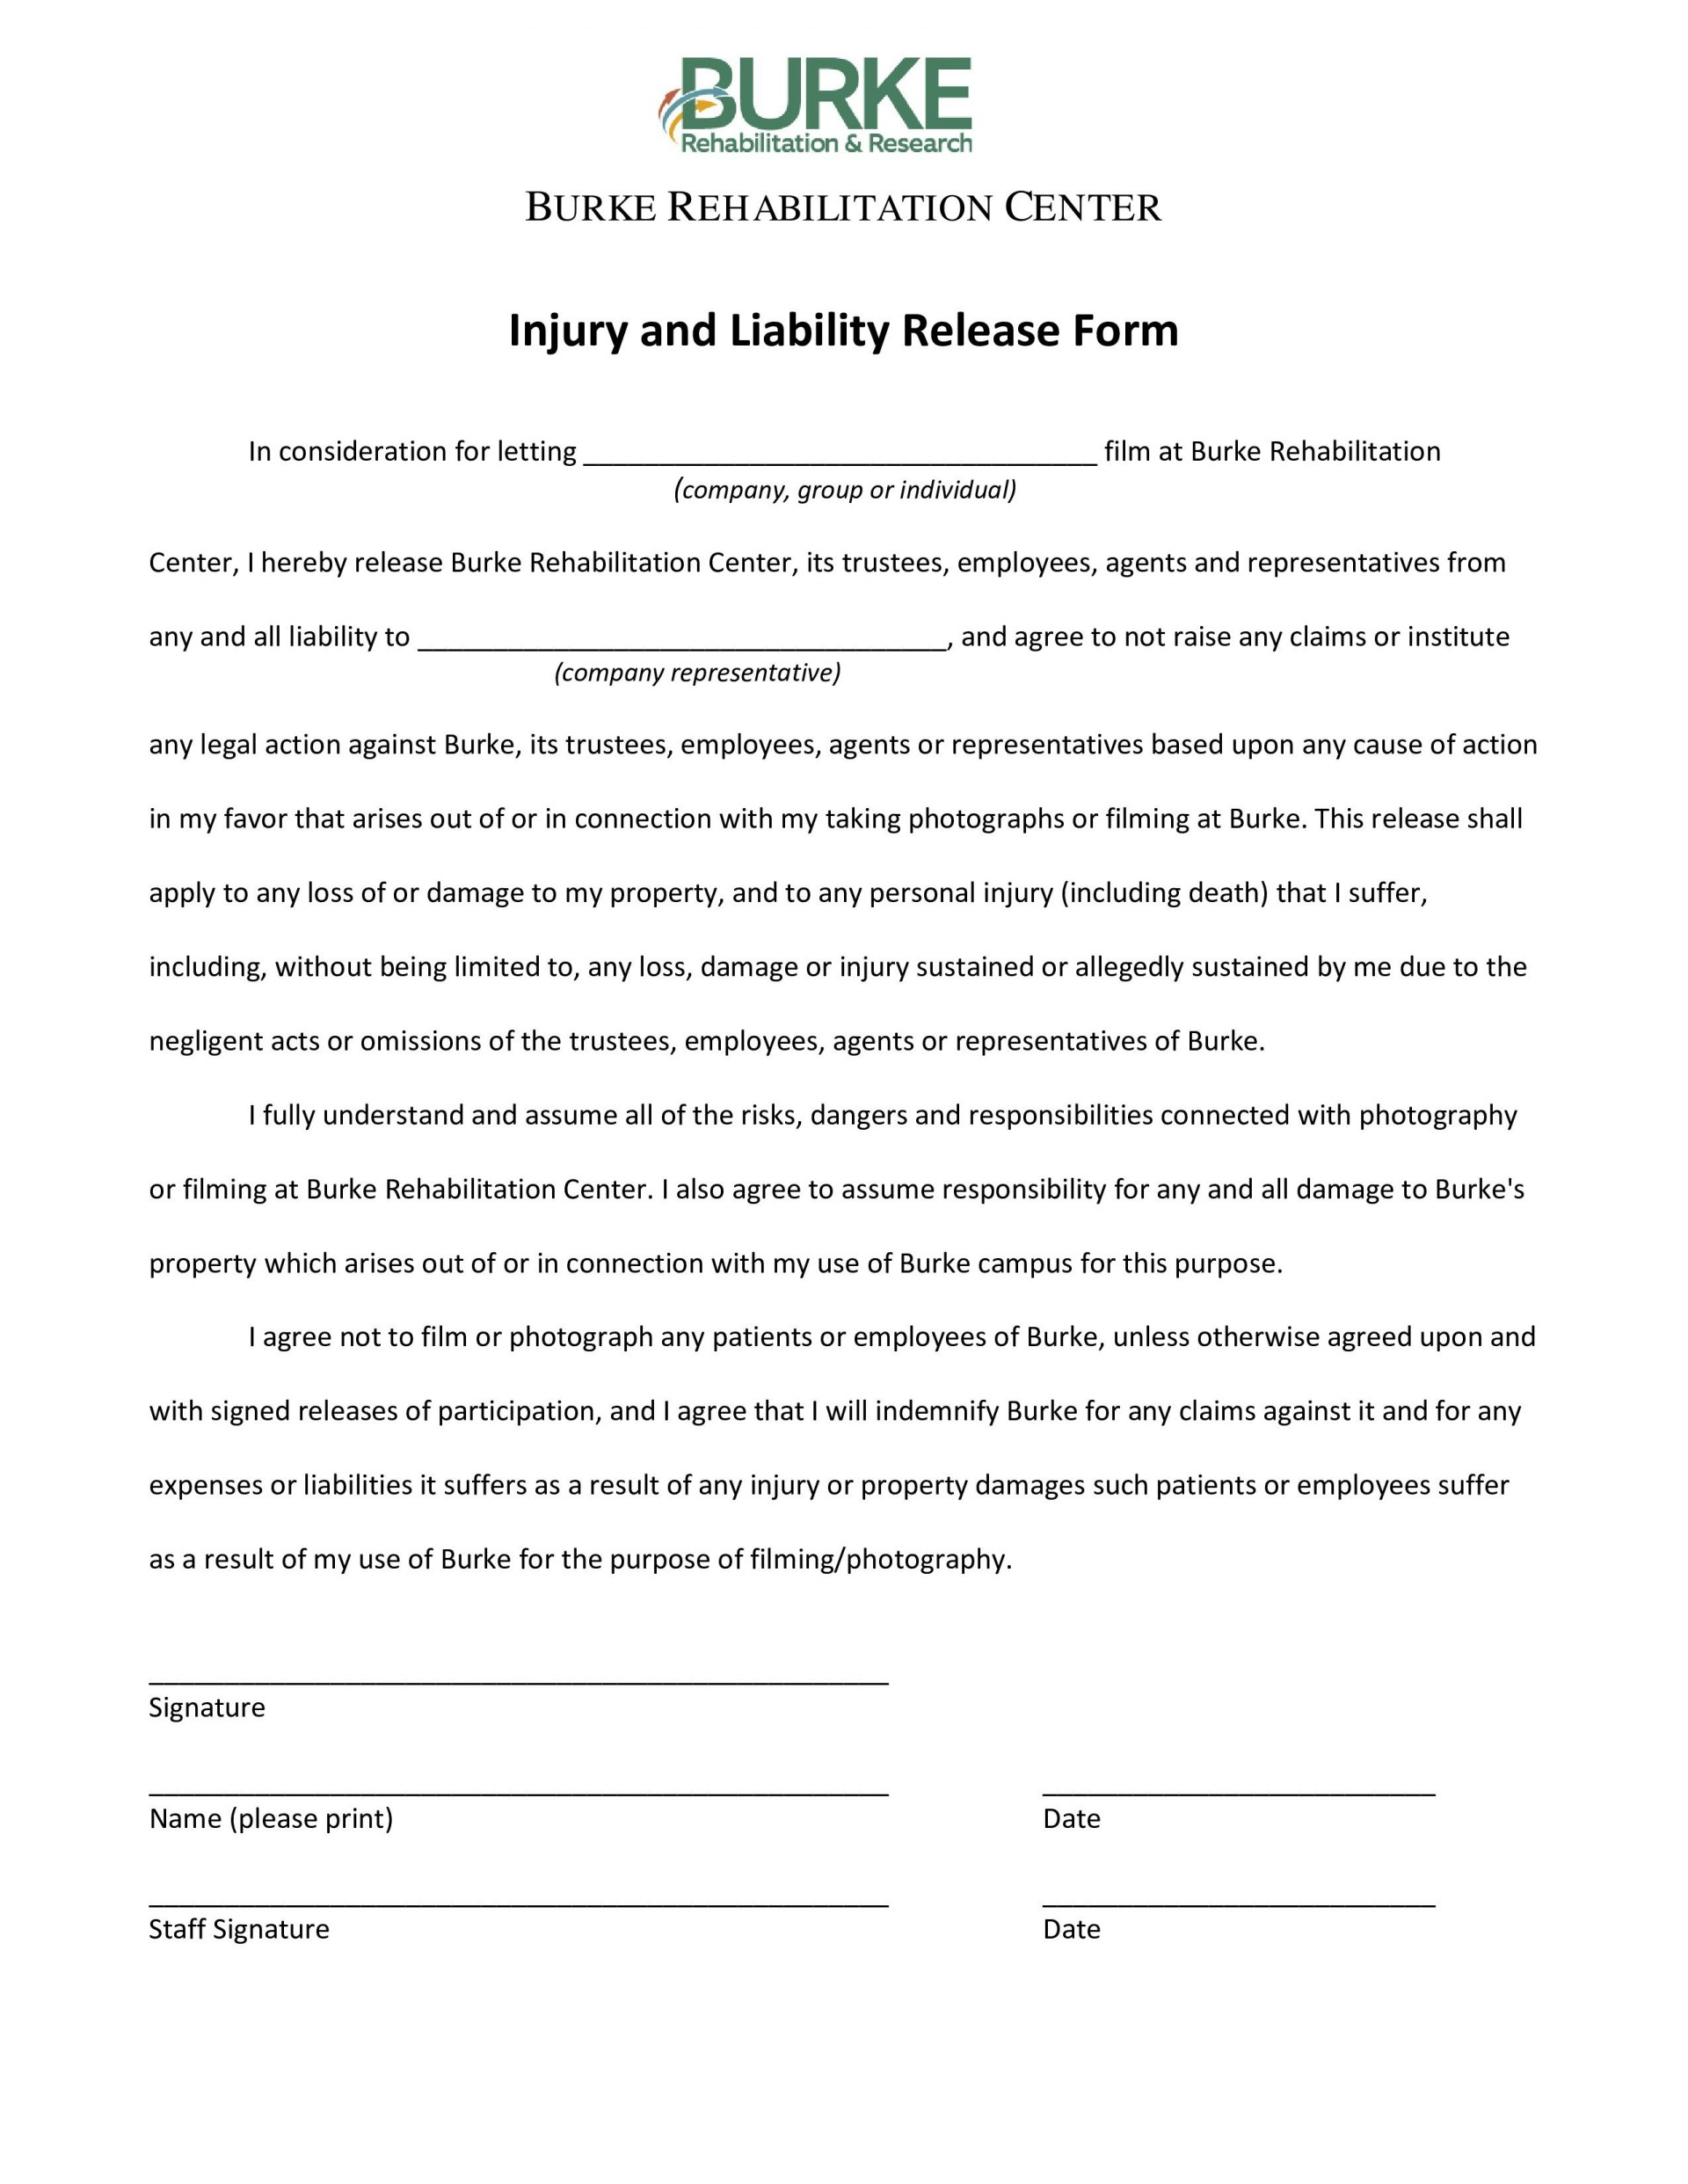 007 Awesome Liability Release Form Template Design  General Waiver Church Free1920